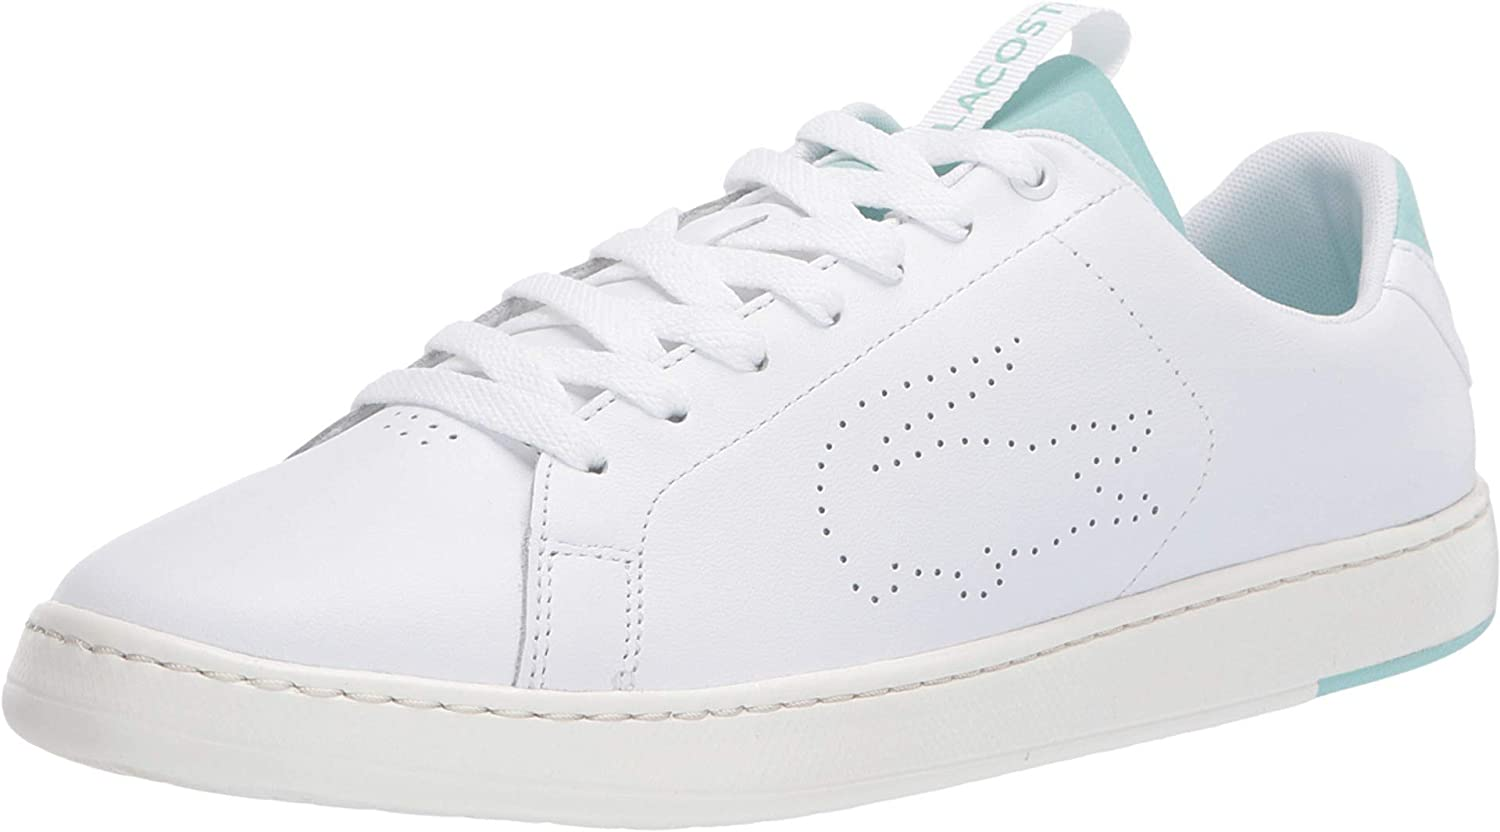 Max 41% OFF Lacoste New Shipping Free Shipping Carnaby Evo 1 120 Lightweight